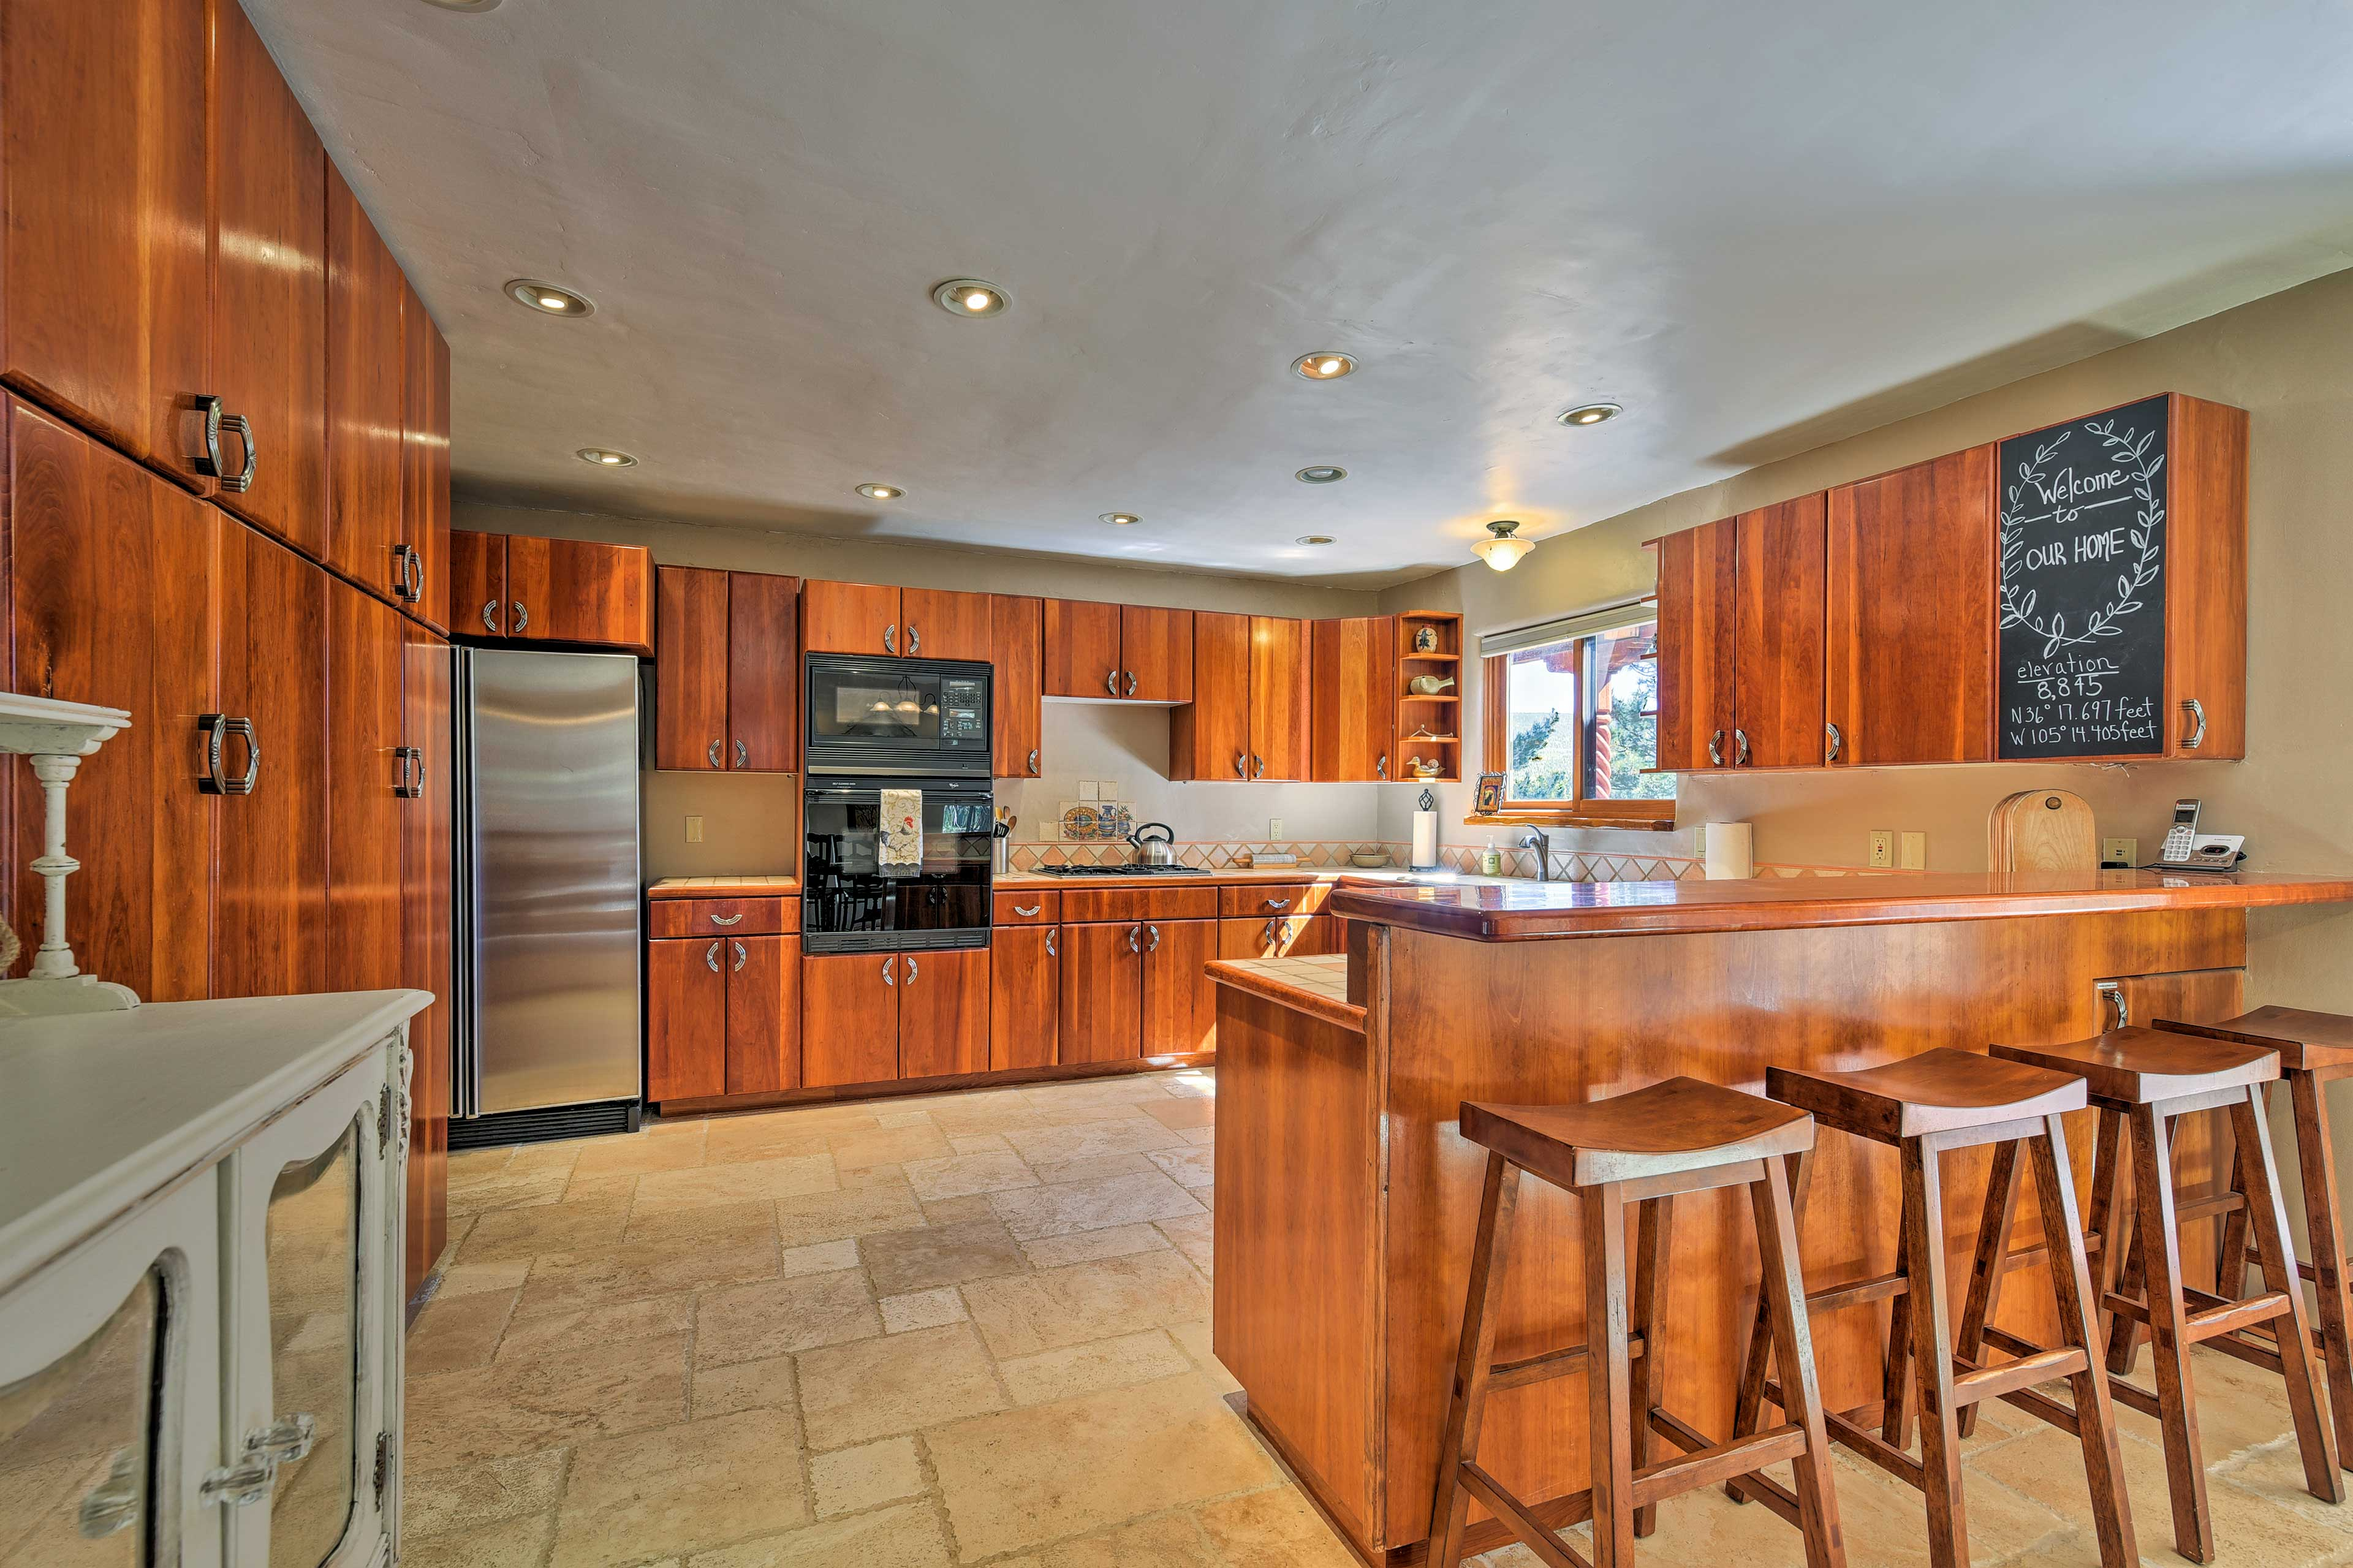 Tiled floors and sleek wooden cabinets detail the fully equipped kitchen.